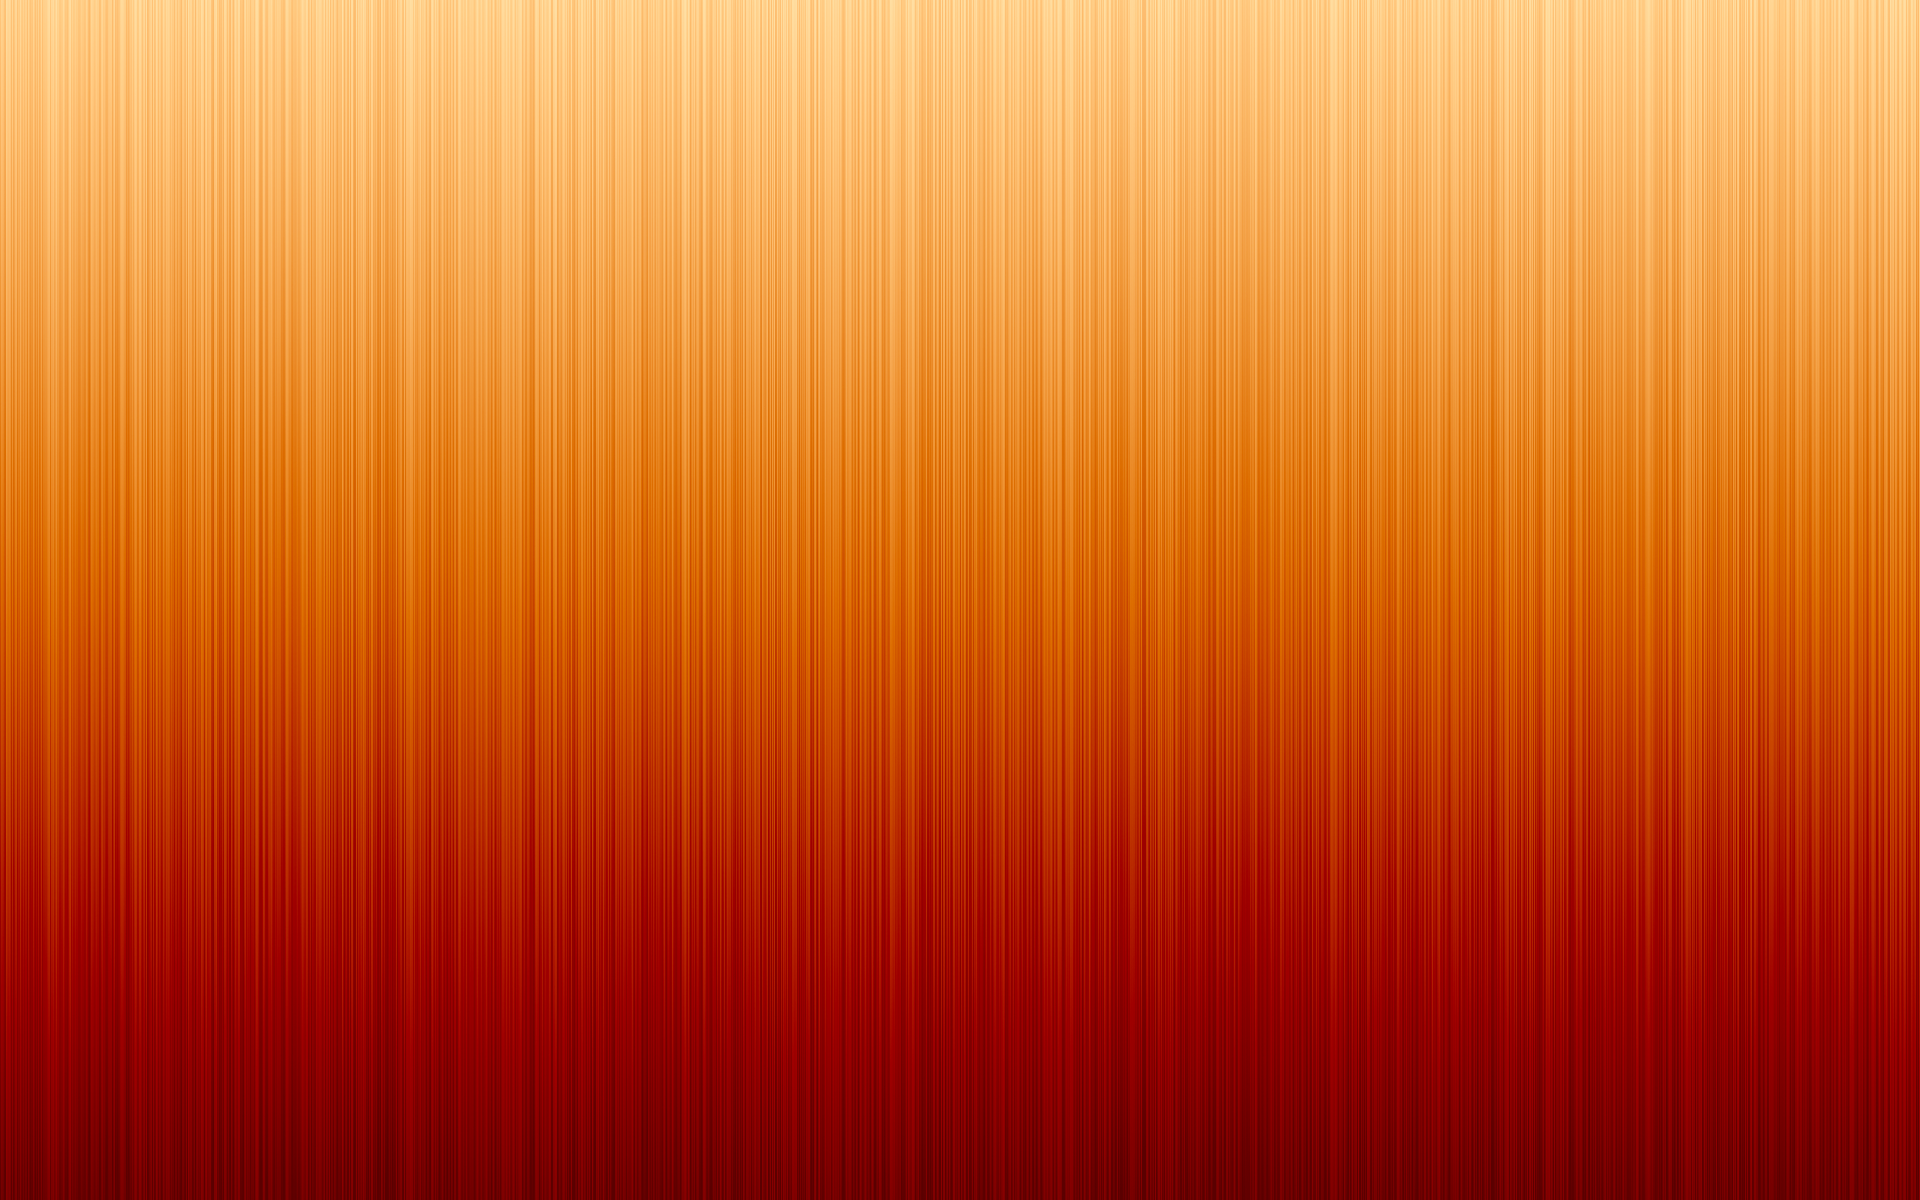 Orange HD Wallpaper